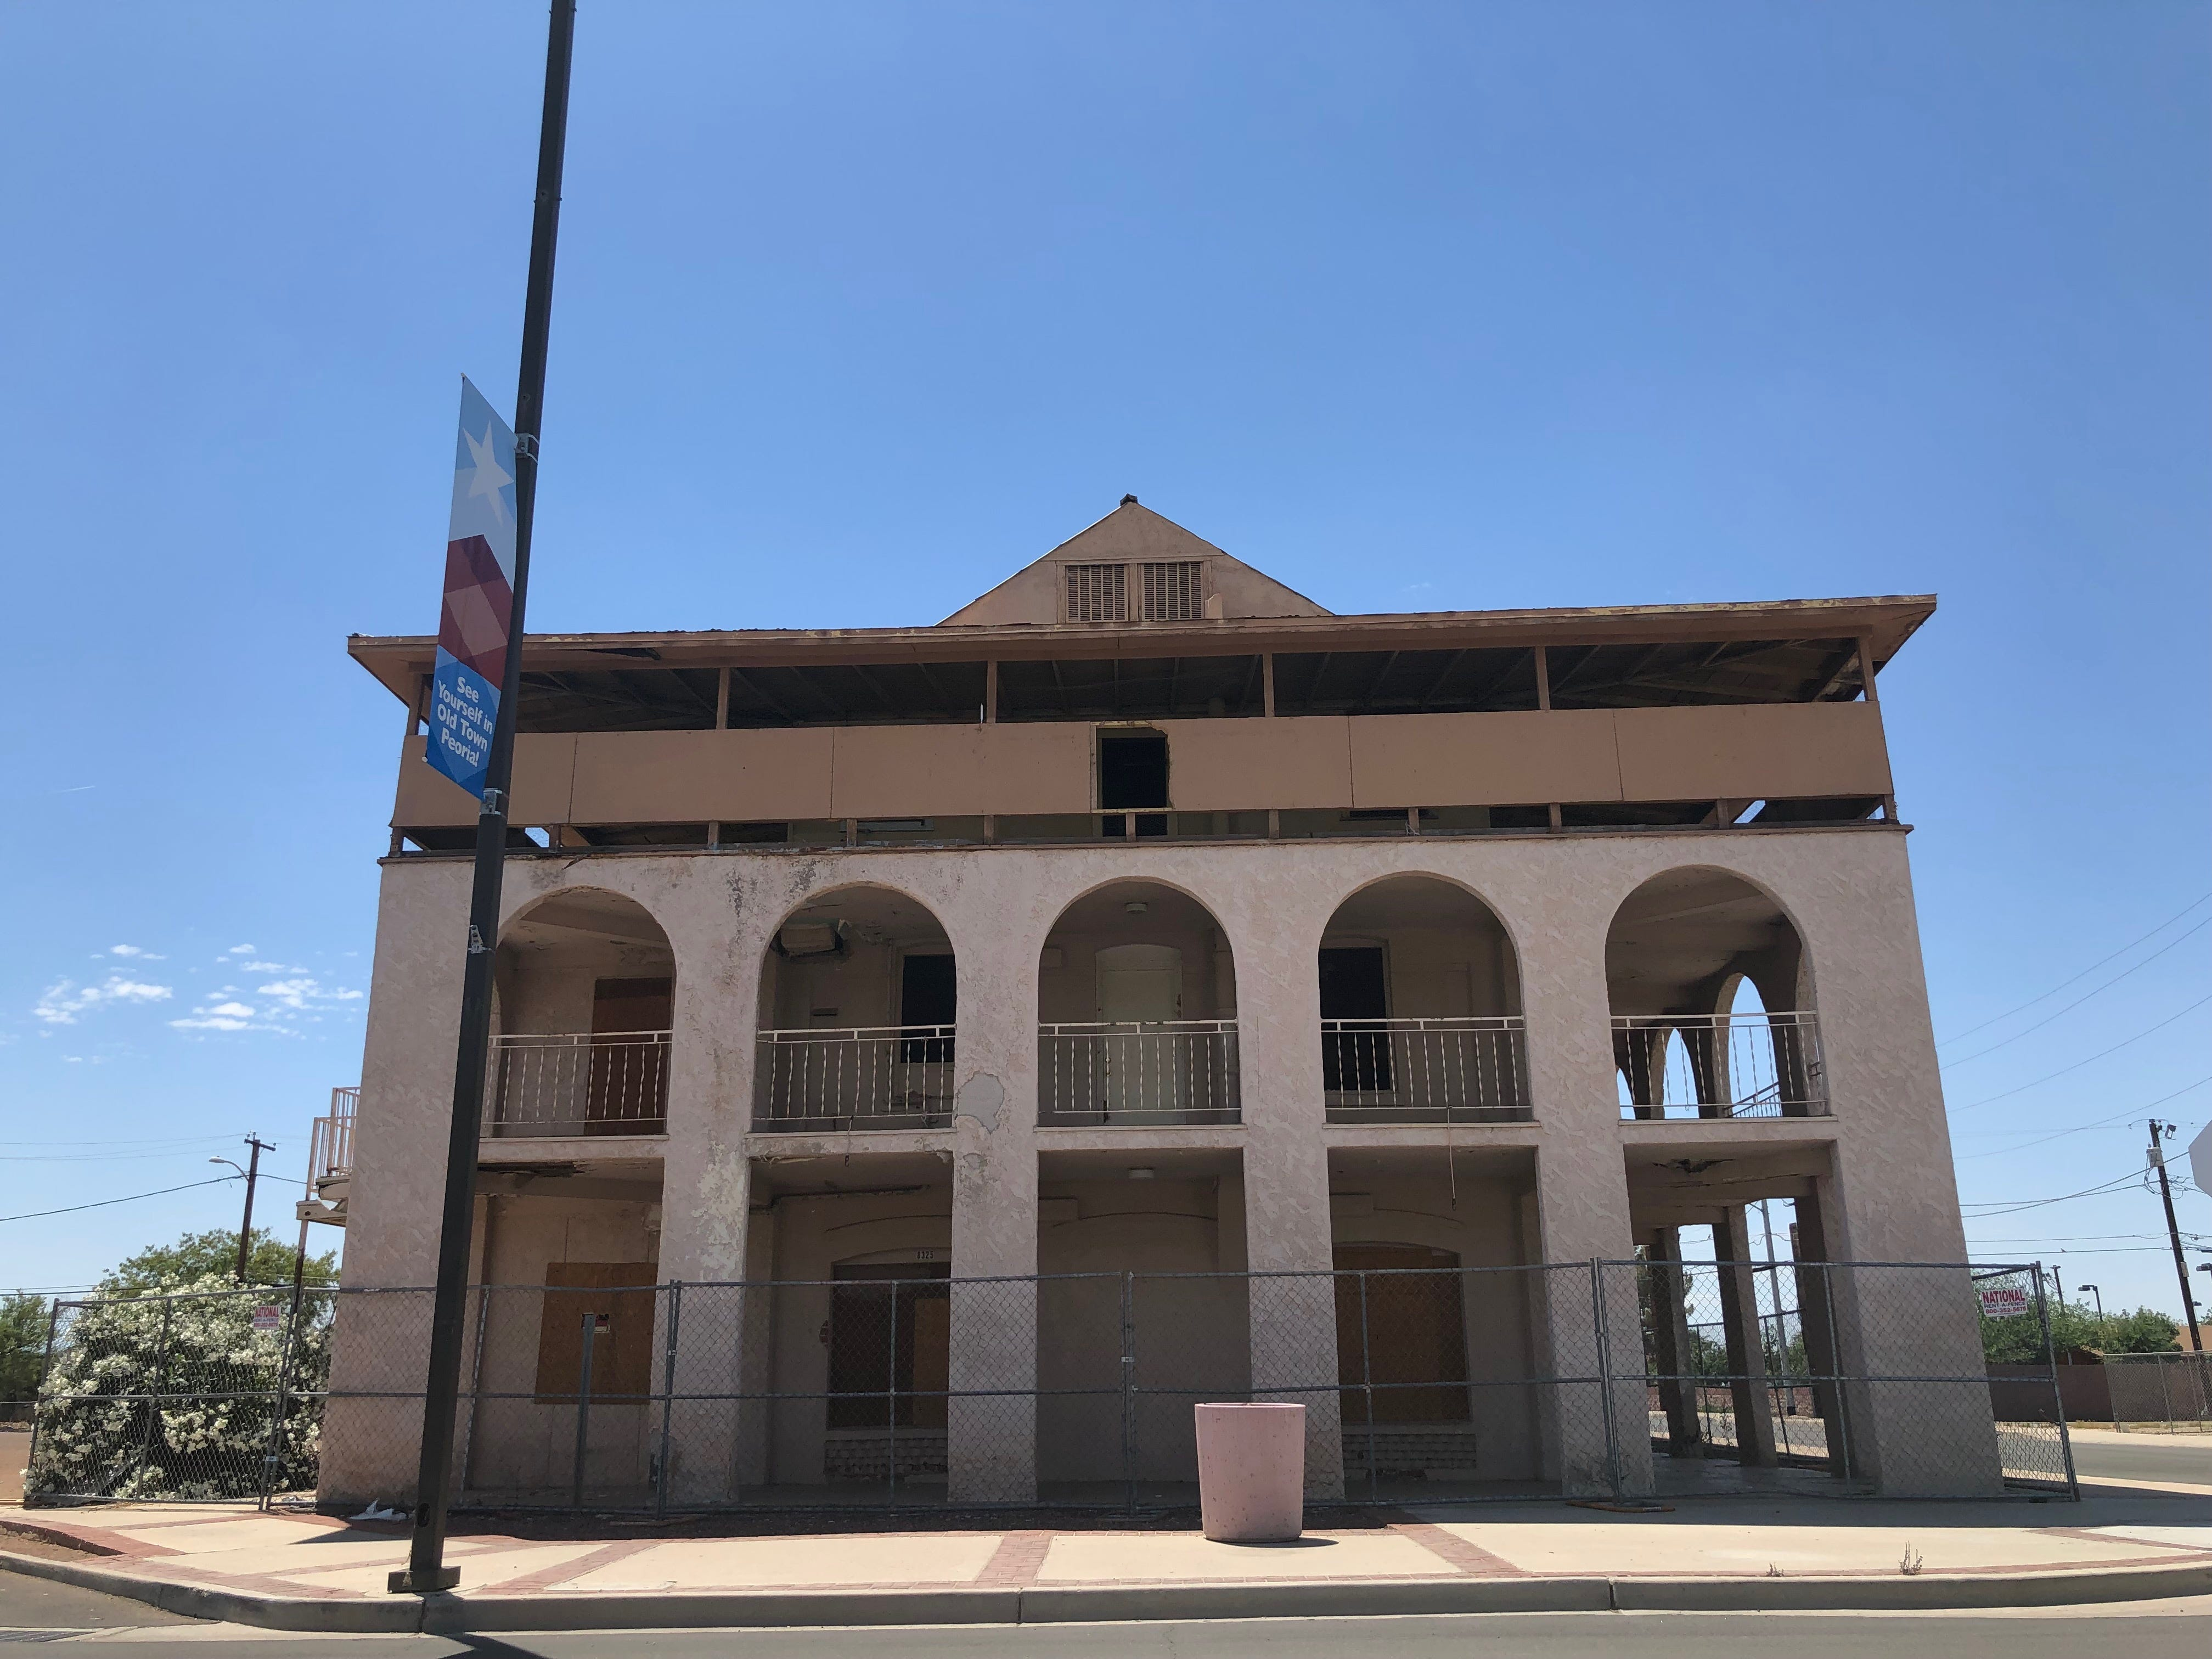 Old Town Peoria's Edwards Hotel was supposed to transform into a vacation destination by the end of 2018. Now, it's still vacant and fenced-off.